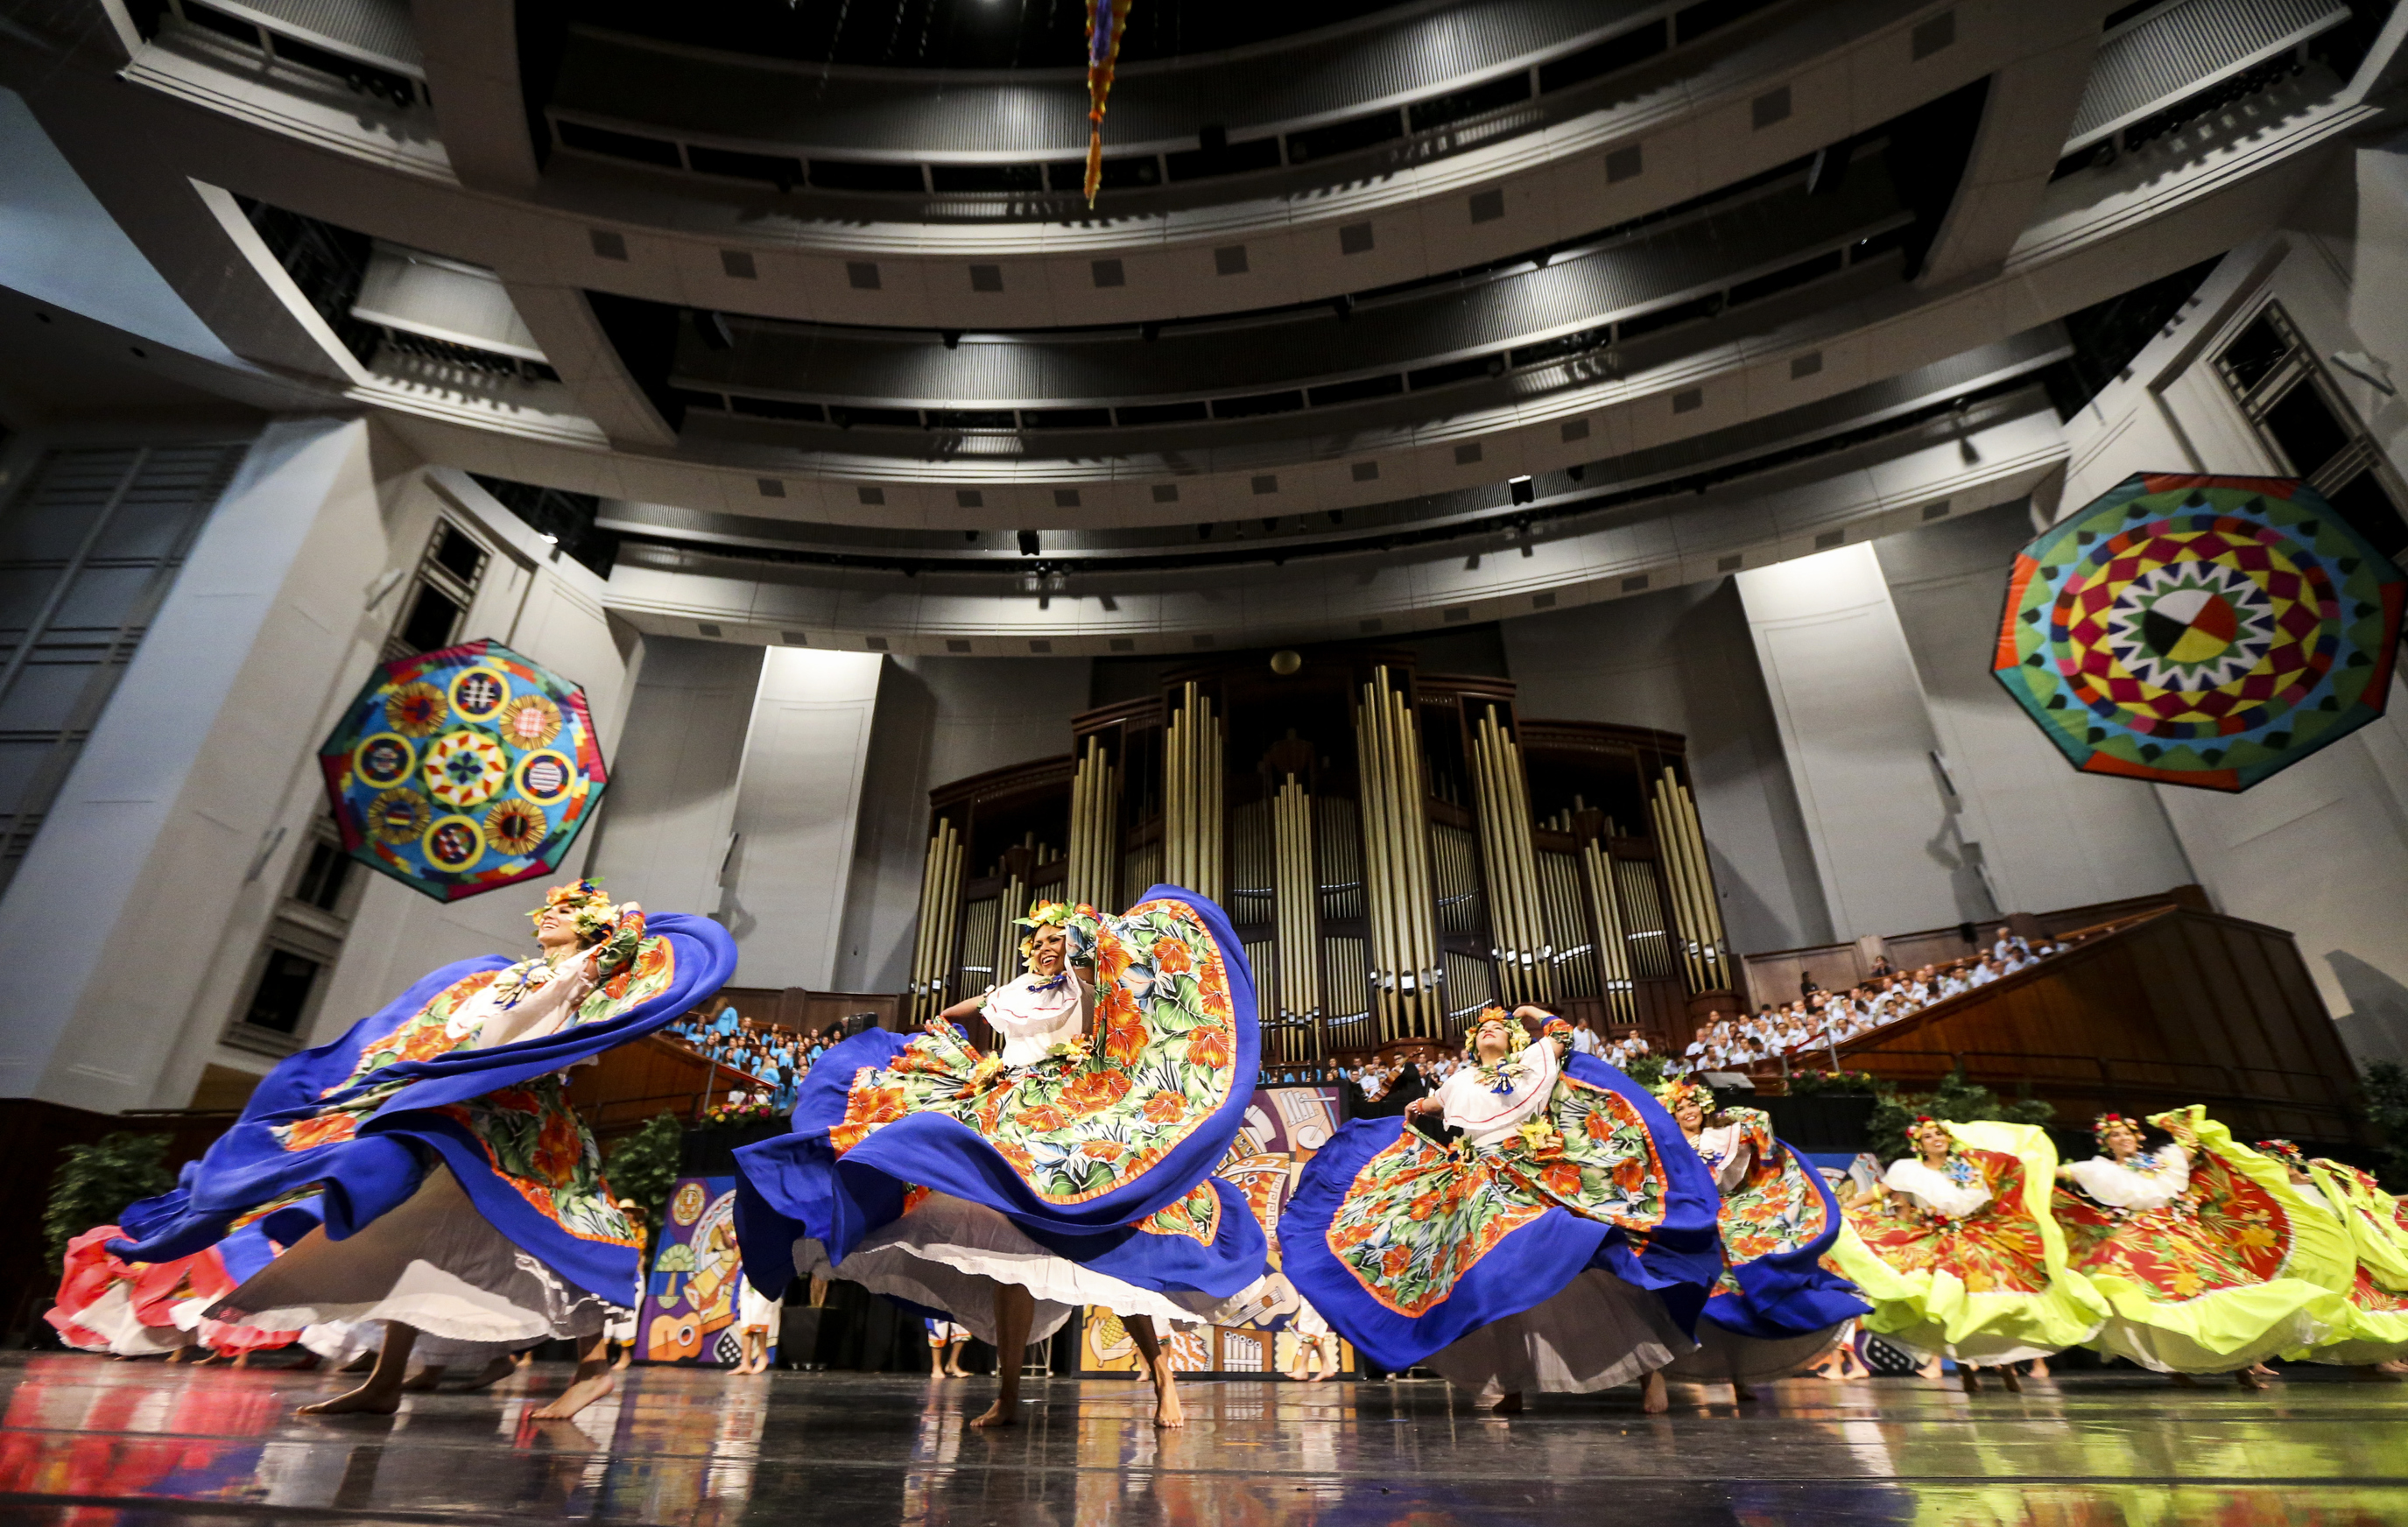 Dancers perform during the dress rehearsal of the Brazilian dance Sinha Pureza for the Luz de las Naciones performance at the Conference Center in Salt Lake City on Saturday, Oct. 26, 2019.